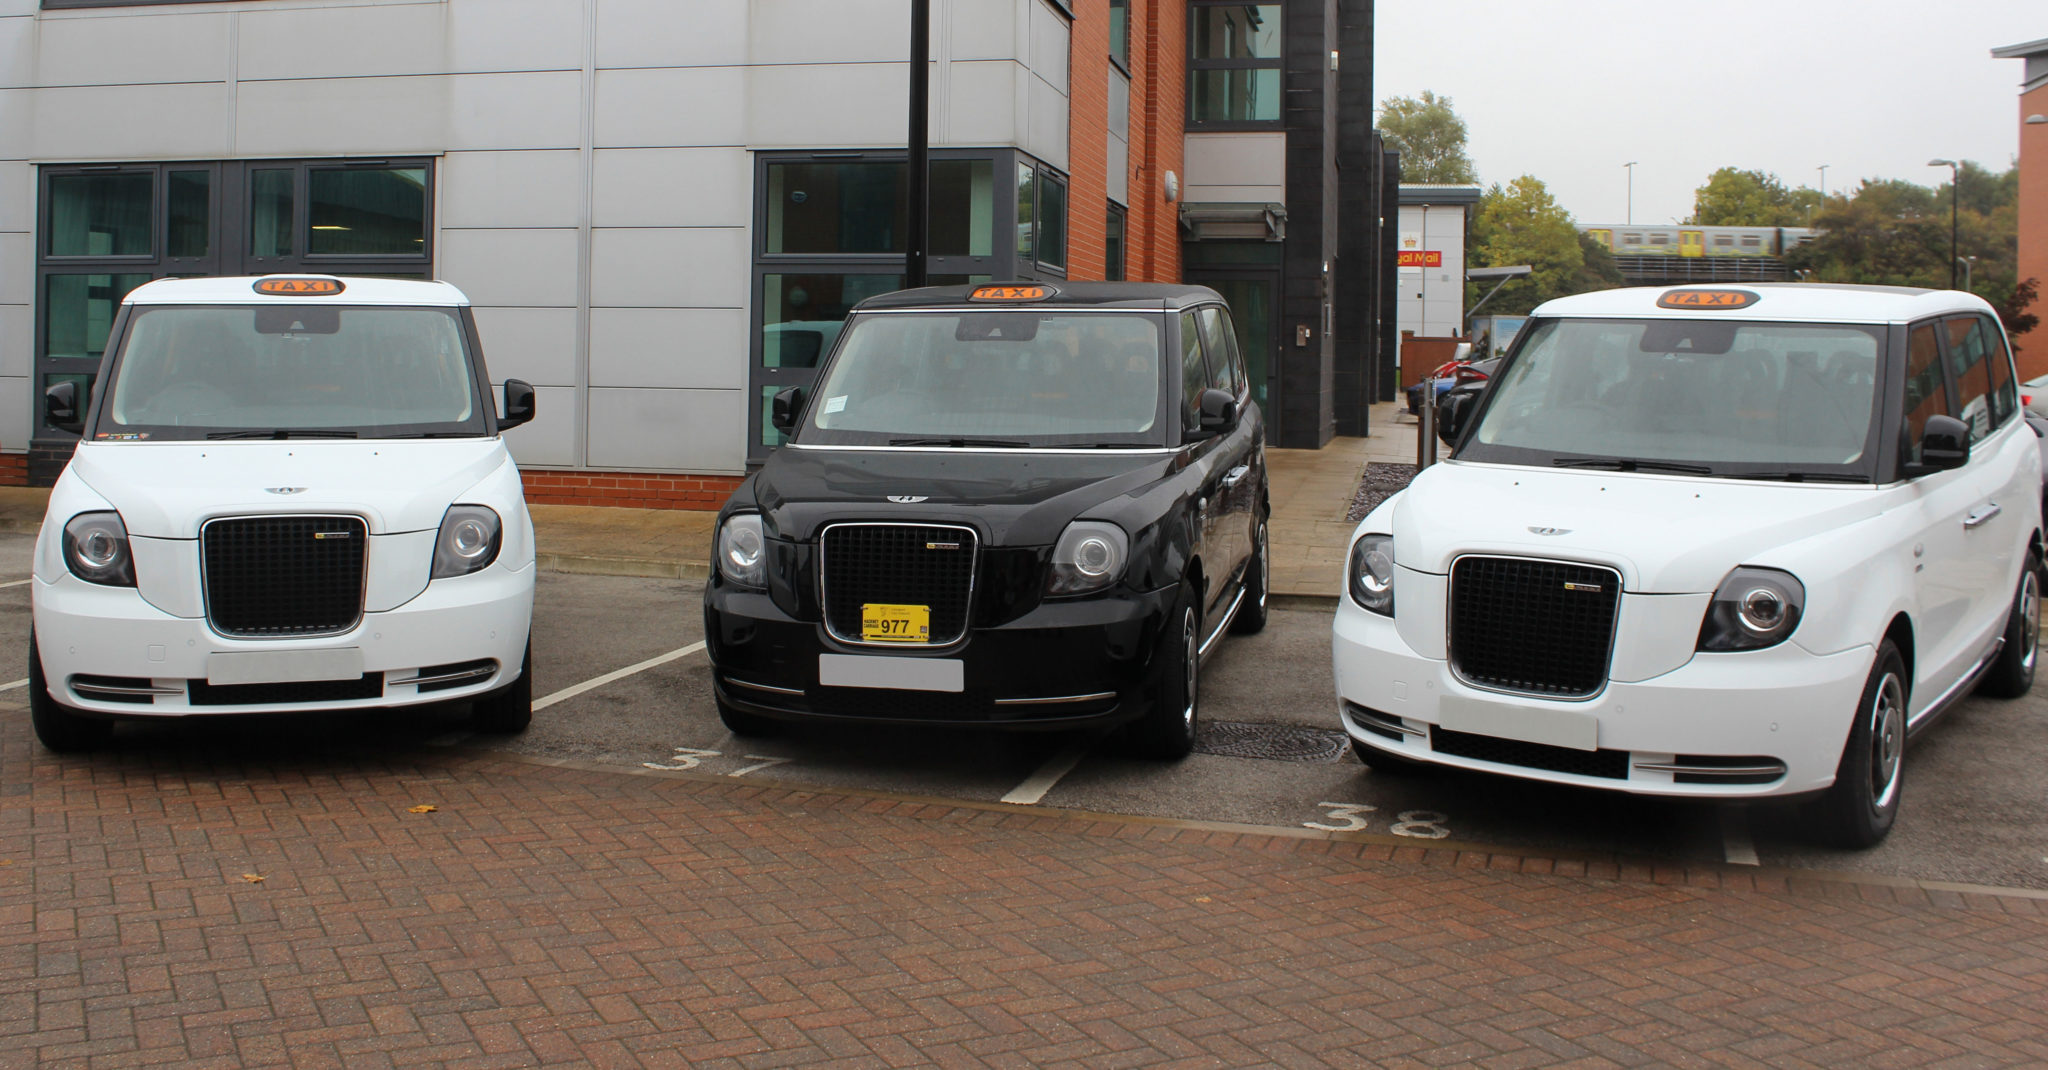 Liverpool's first electric black cabs hit the road | Patons